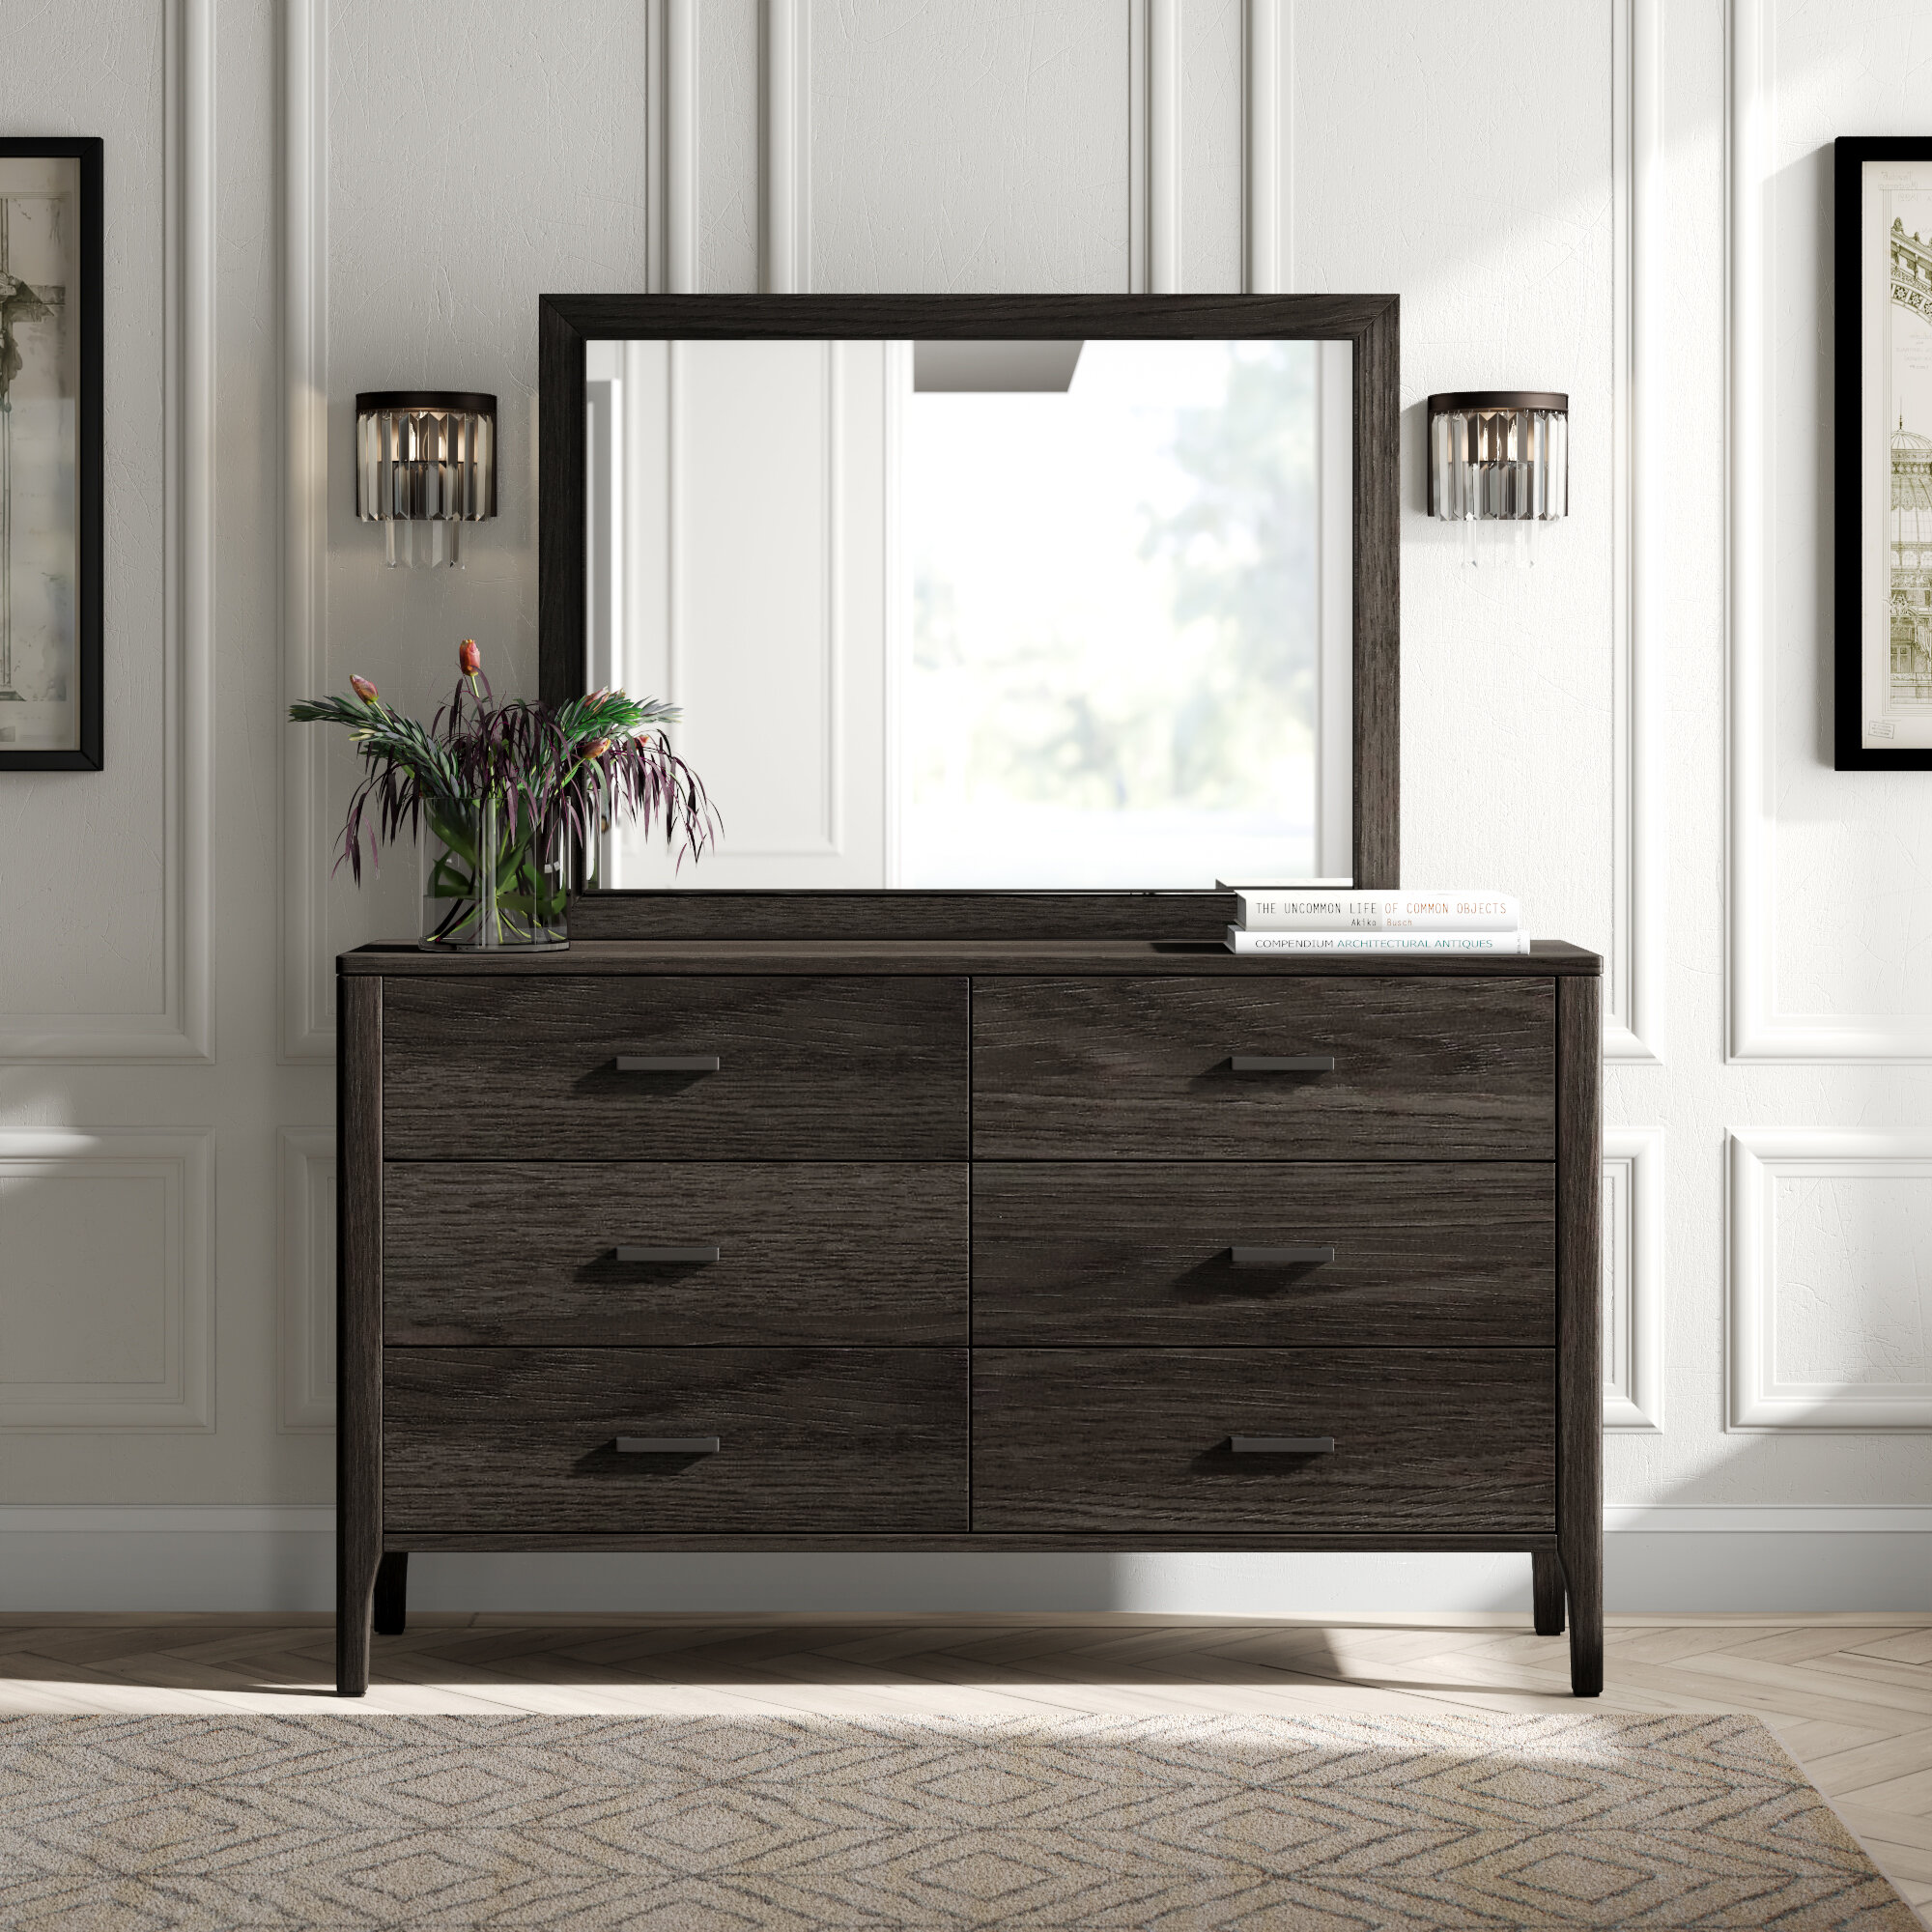 Mirror Tall Dressers Chests You Ll Love In 2021 Wayfair